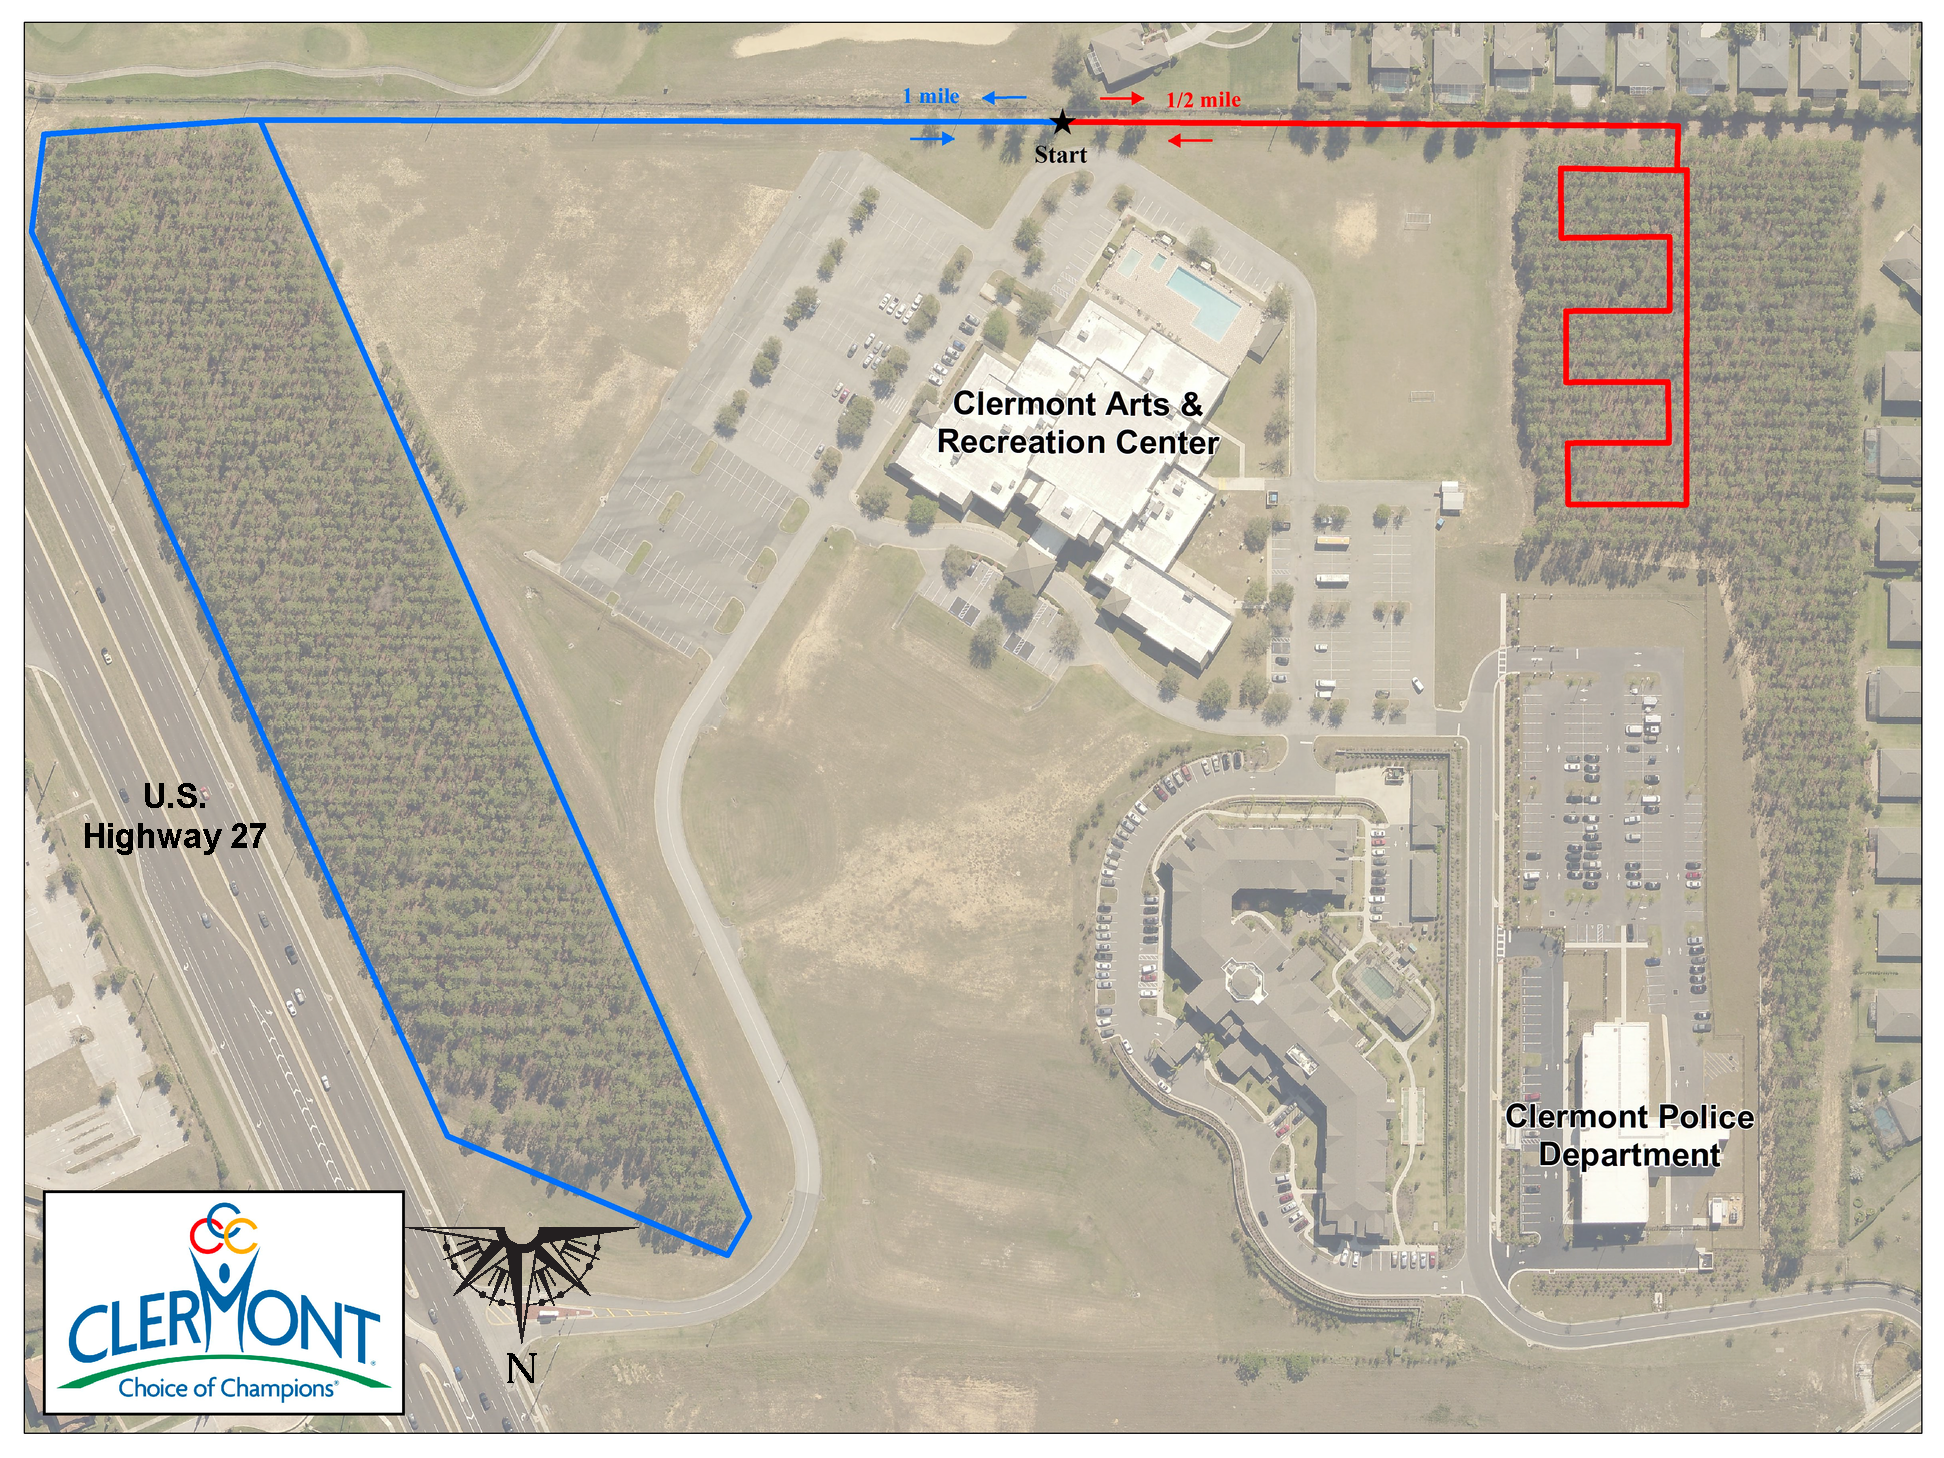 map of walking trails at Clermont Arts and Recreation Center, blue line on left with loop shows one mile trail, red winding line shows half mile trail on right